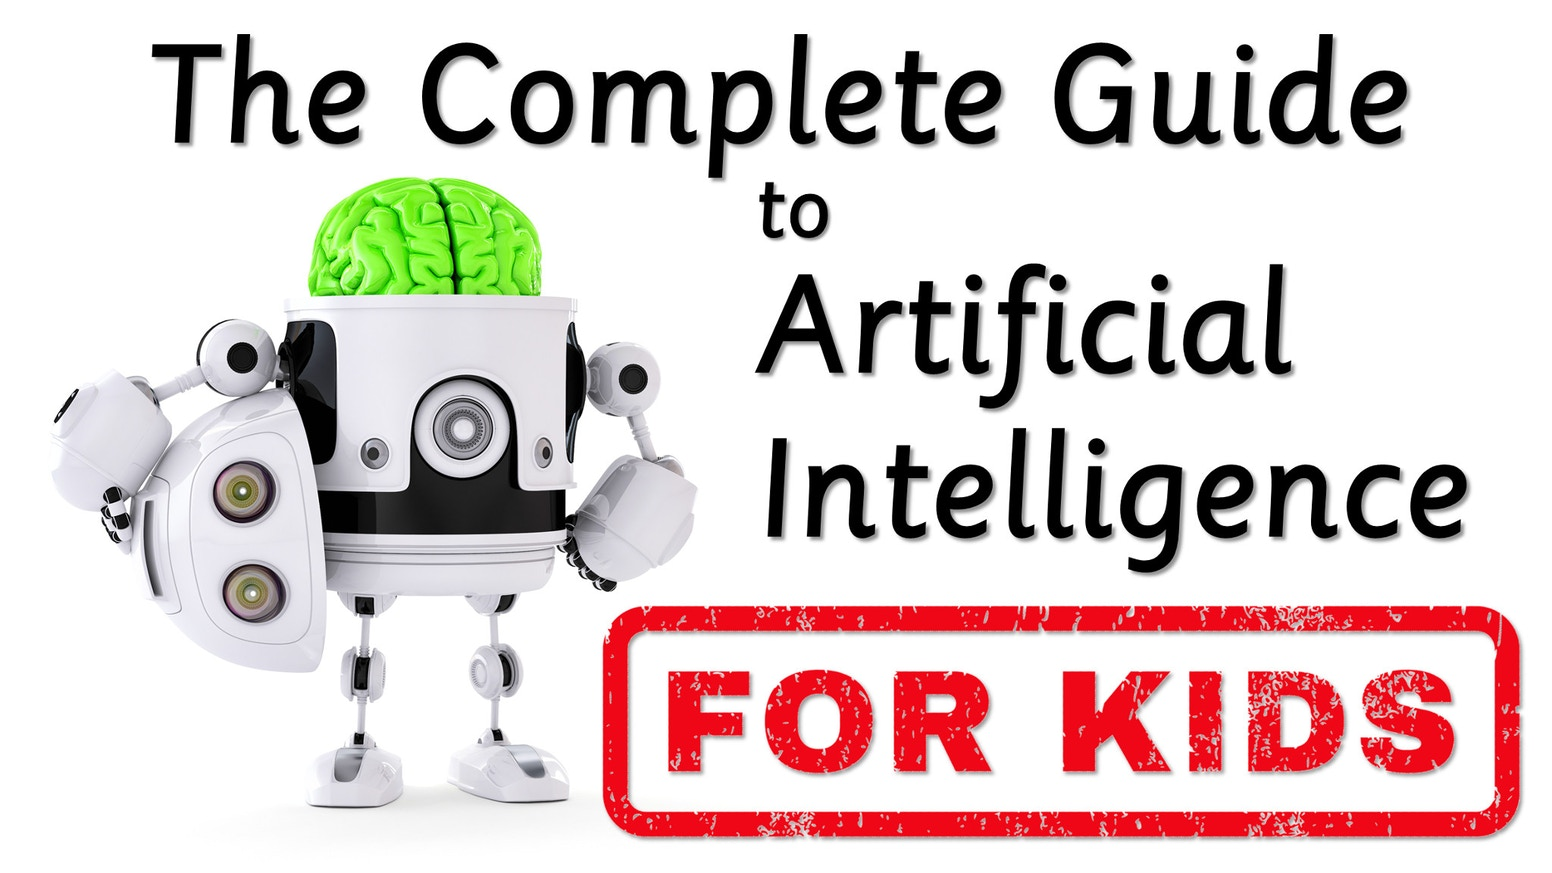 Prepare kids for an AI-filled future with this full color illustrated guide to the key concepts in Artificial Intelligence.